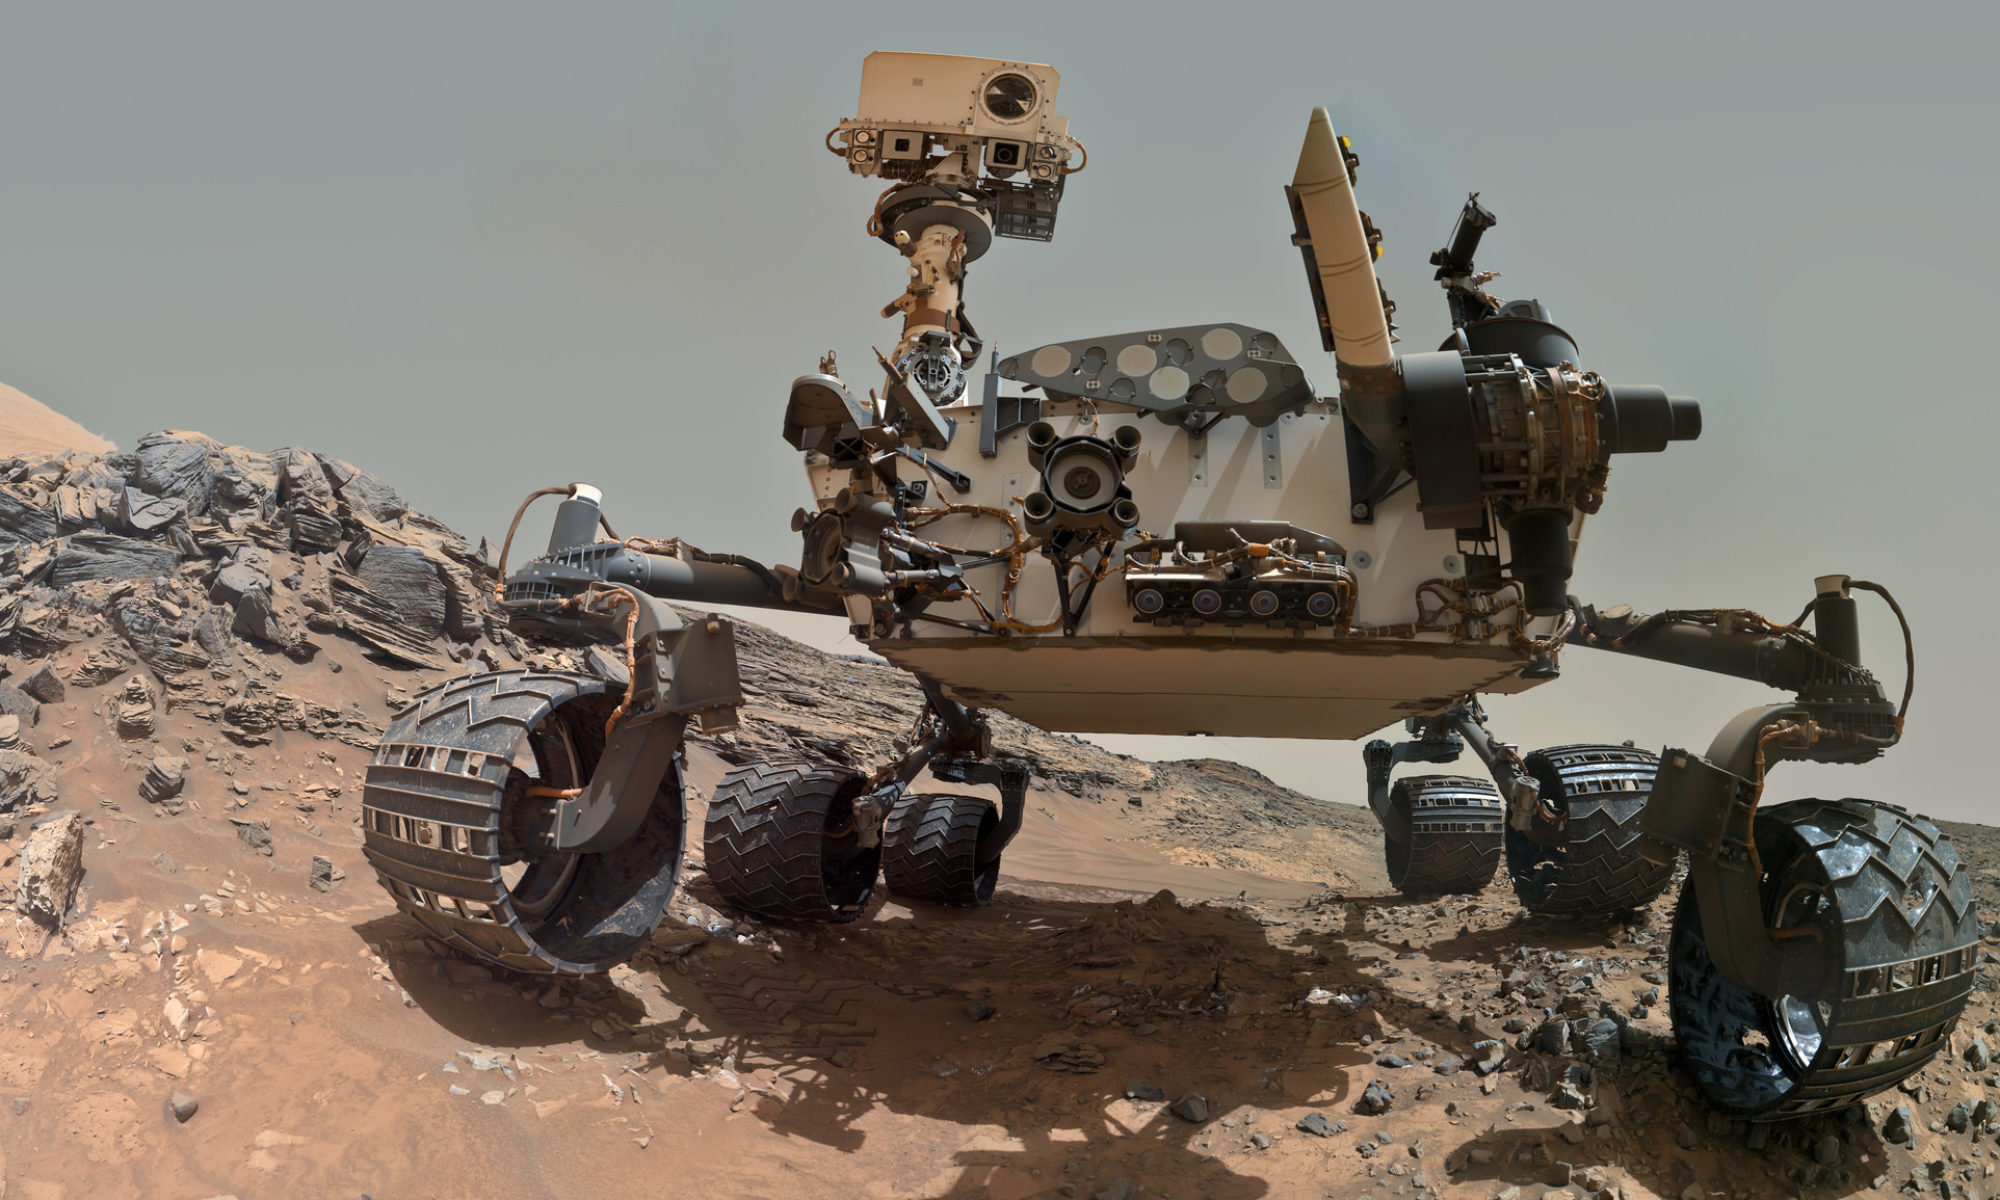 Image: Curiosity, Mars Rover, technology, surface, stones